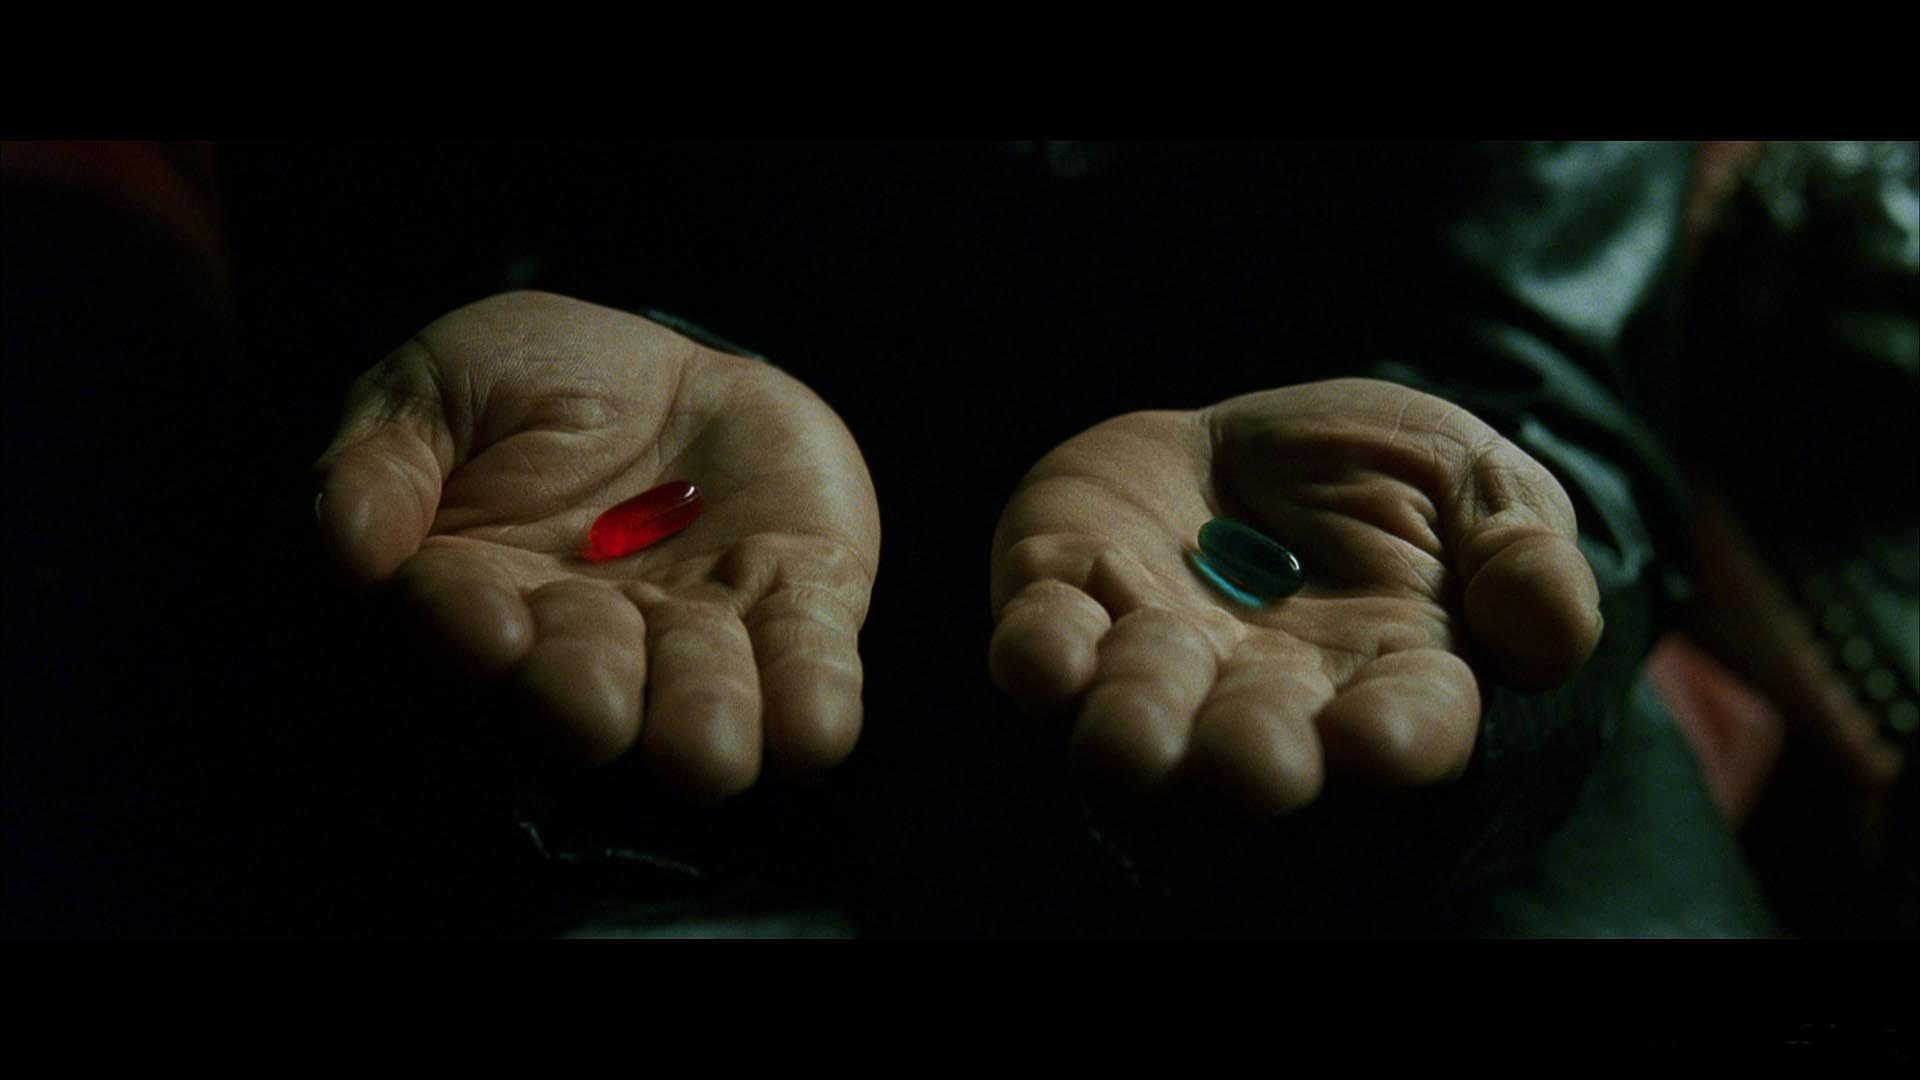 Red or Blue Pill from The Matrix